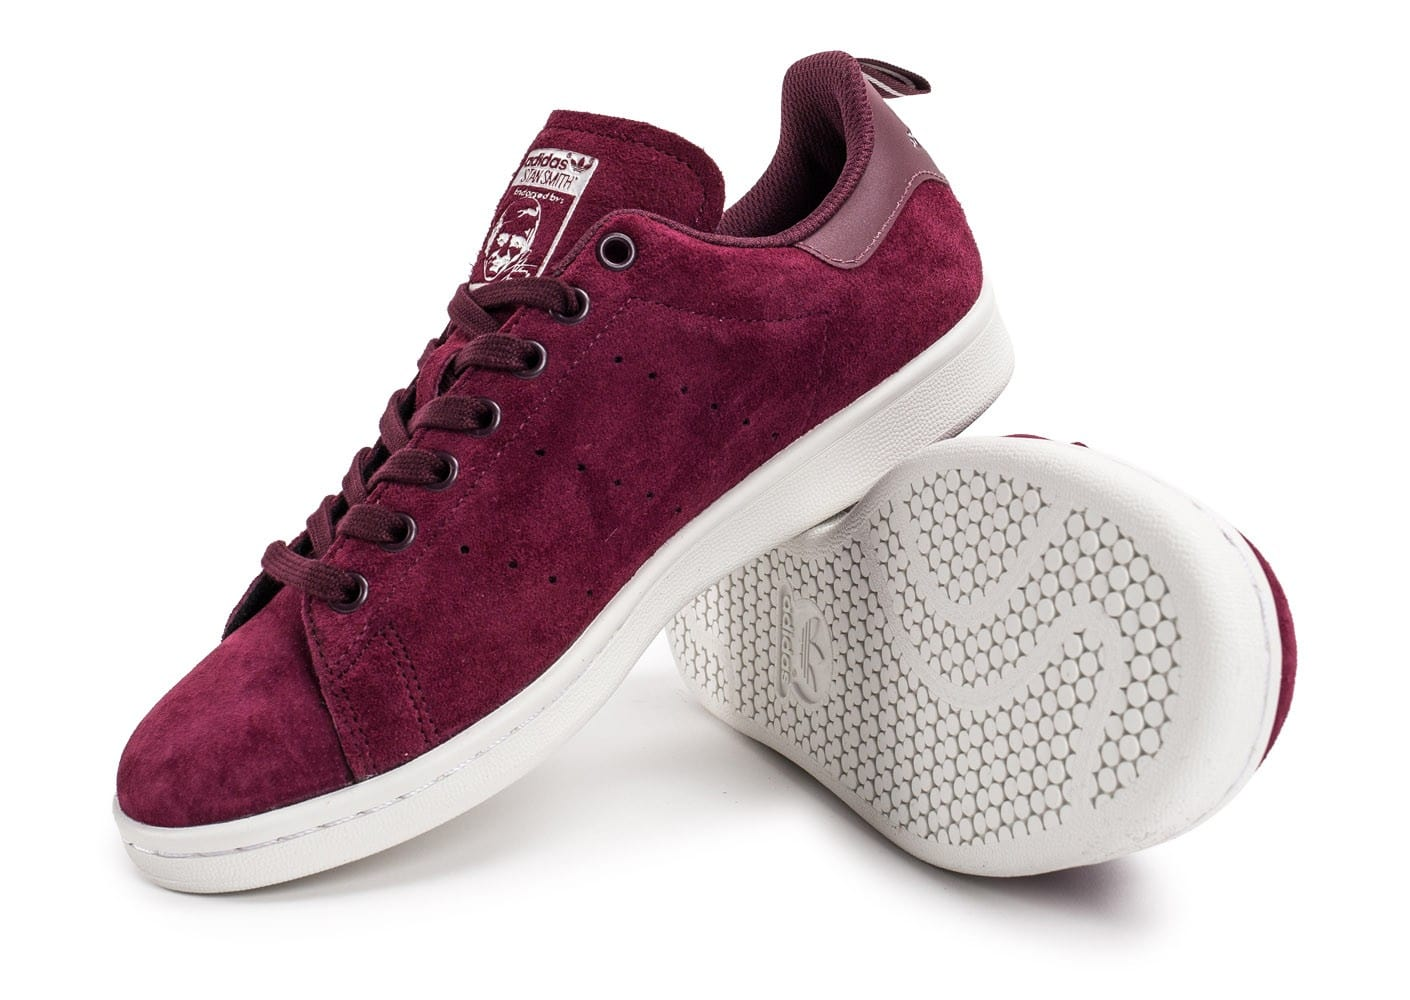 adidas Stan Smith Suede bordeaux Chaussures Baskets homme